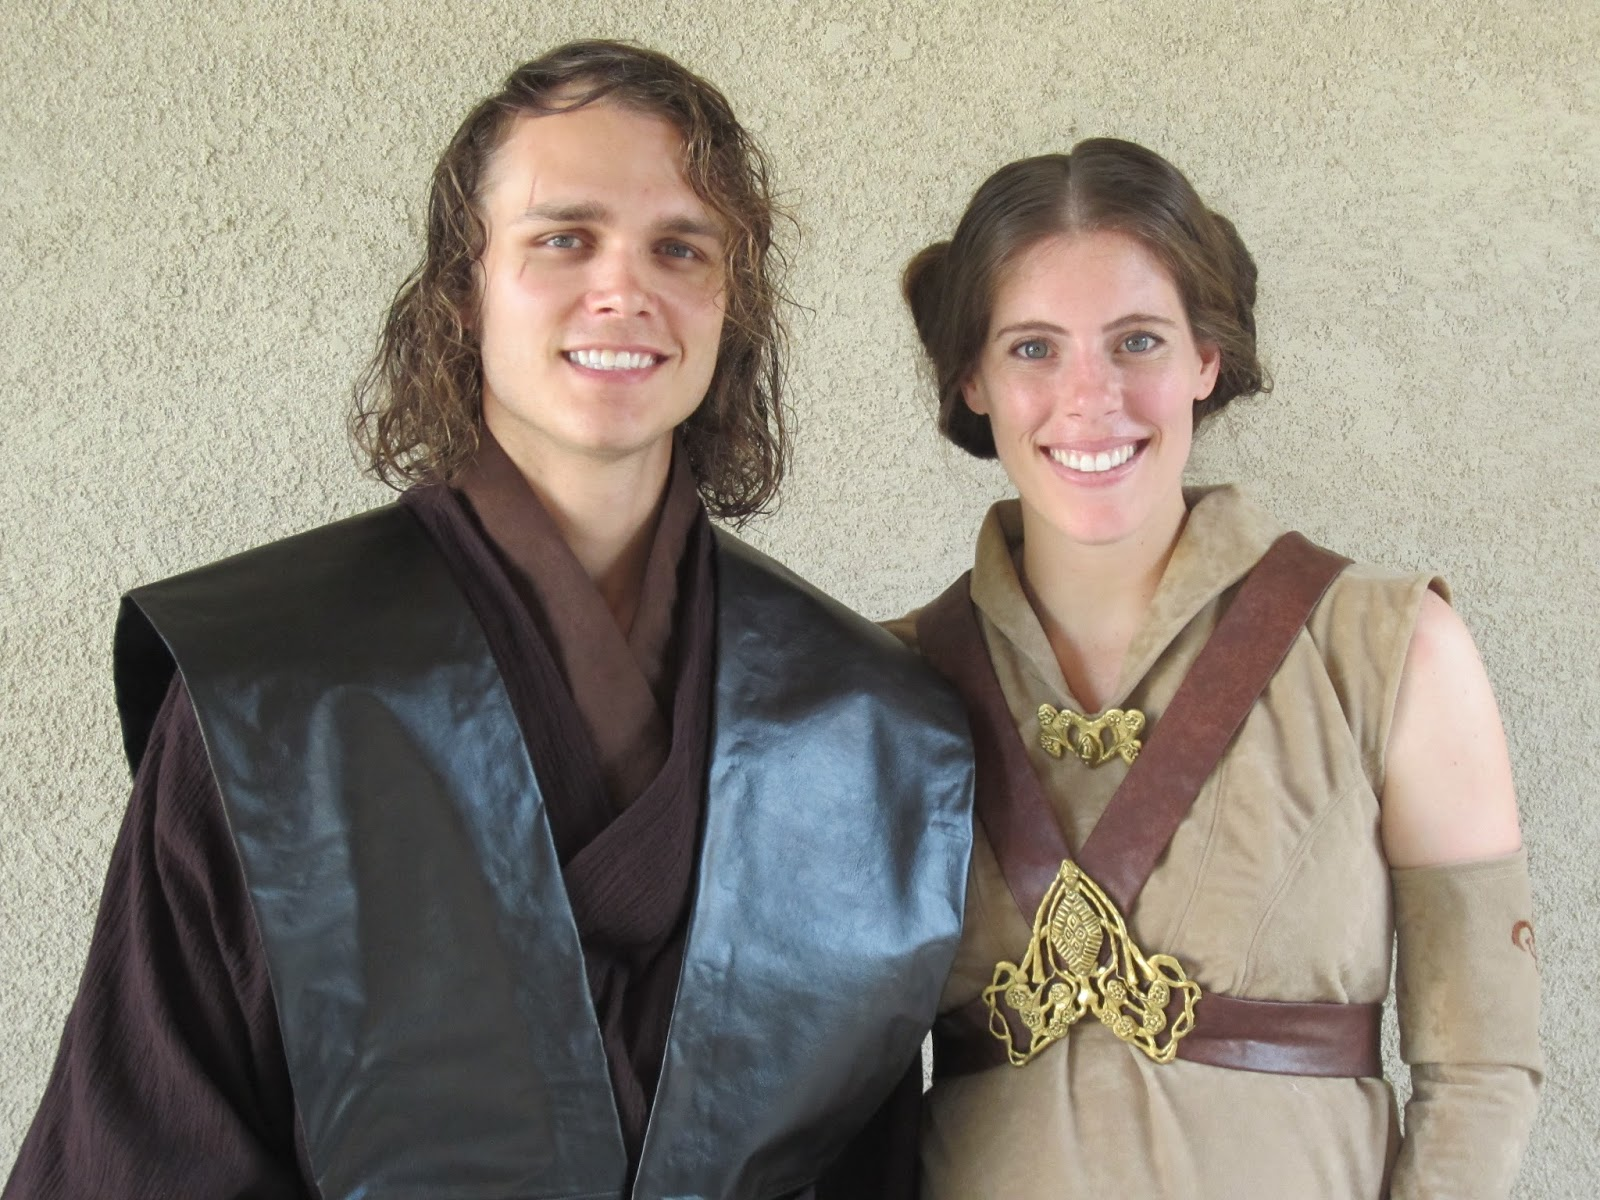 ... I went as Padme (see the Anakin tutorial here). David looks kinda like Hayden Christensen and I am 7 months pregnant so it was the perfect costume.  sc 1 st  DIY Projects & Amanda Did It: DIY Projects: Pregnant Padme Sleeveless Cosplay Tutorial